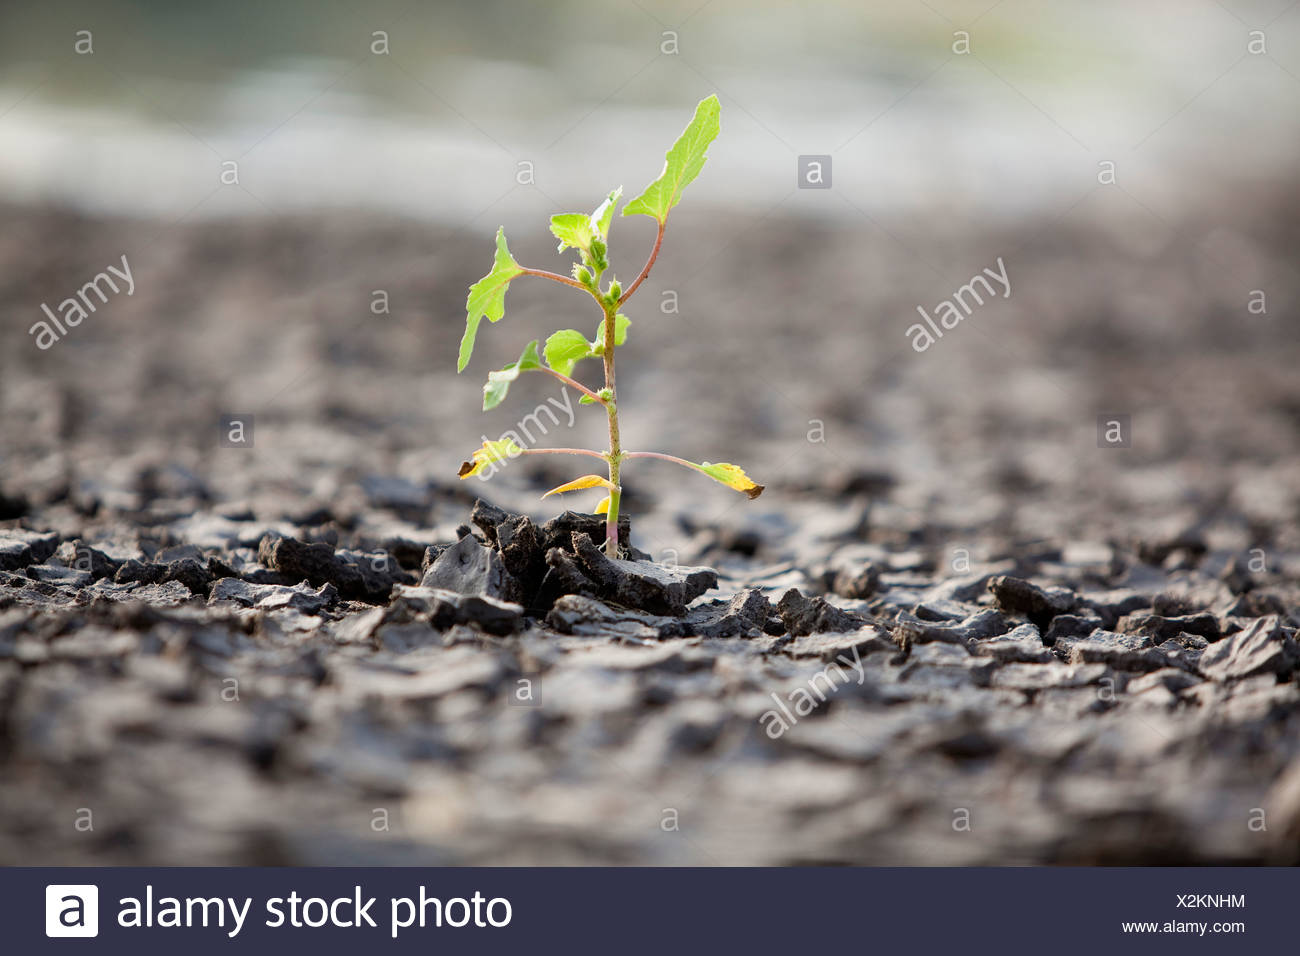 Growth out of hardship a small green shoot breaking out of the arid ground - Stock Image